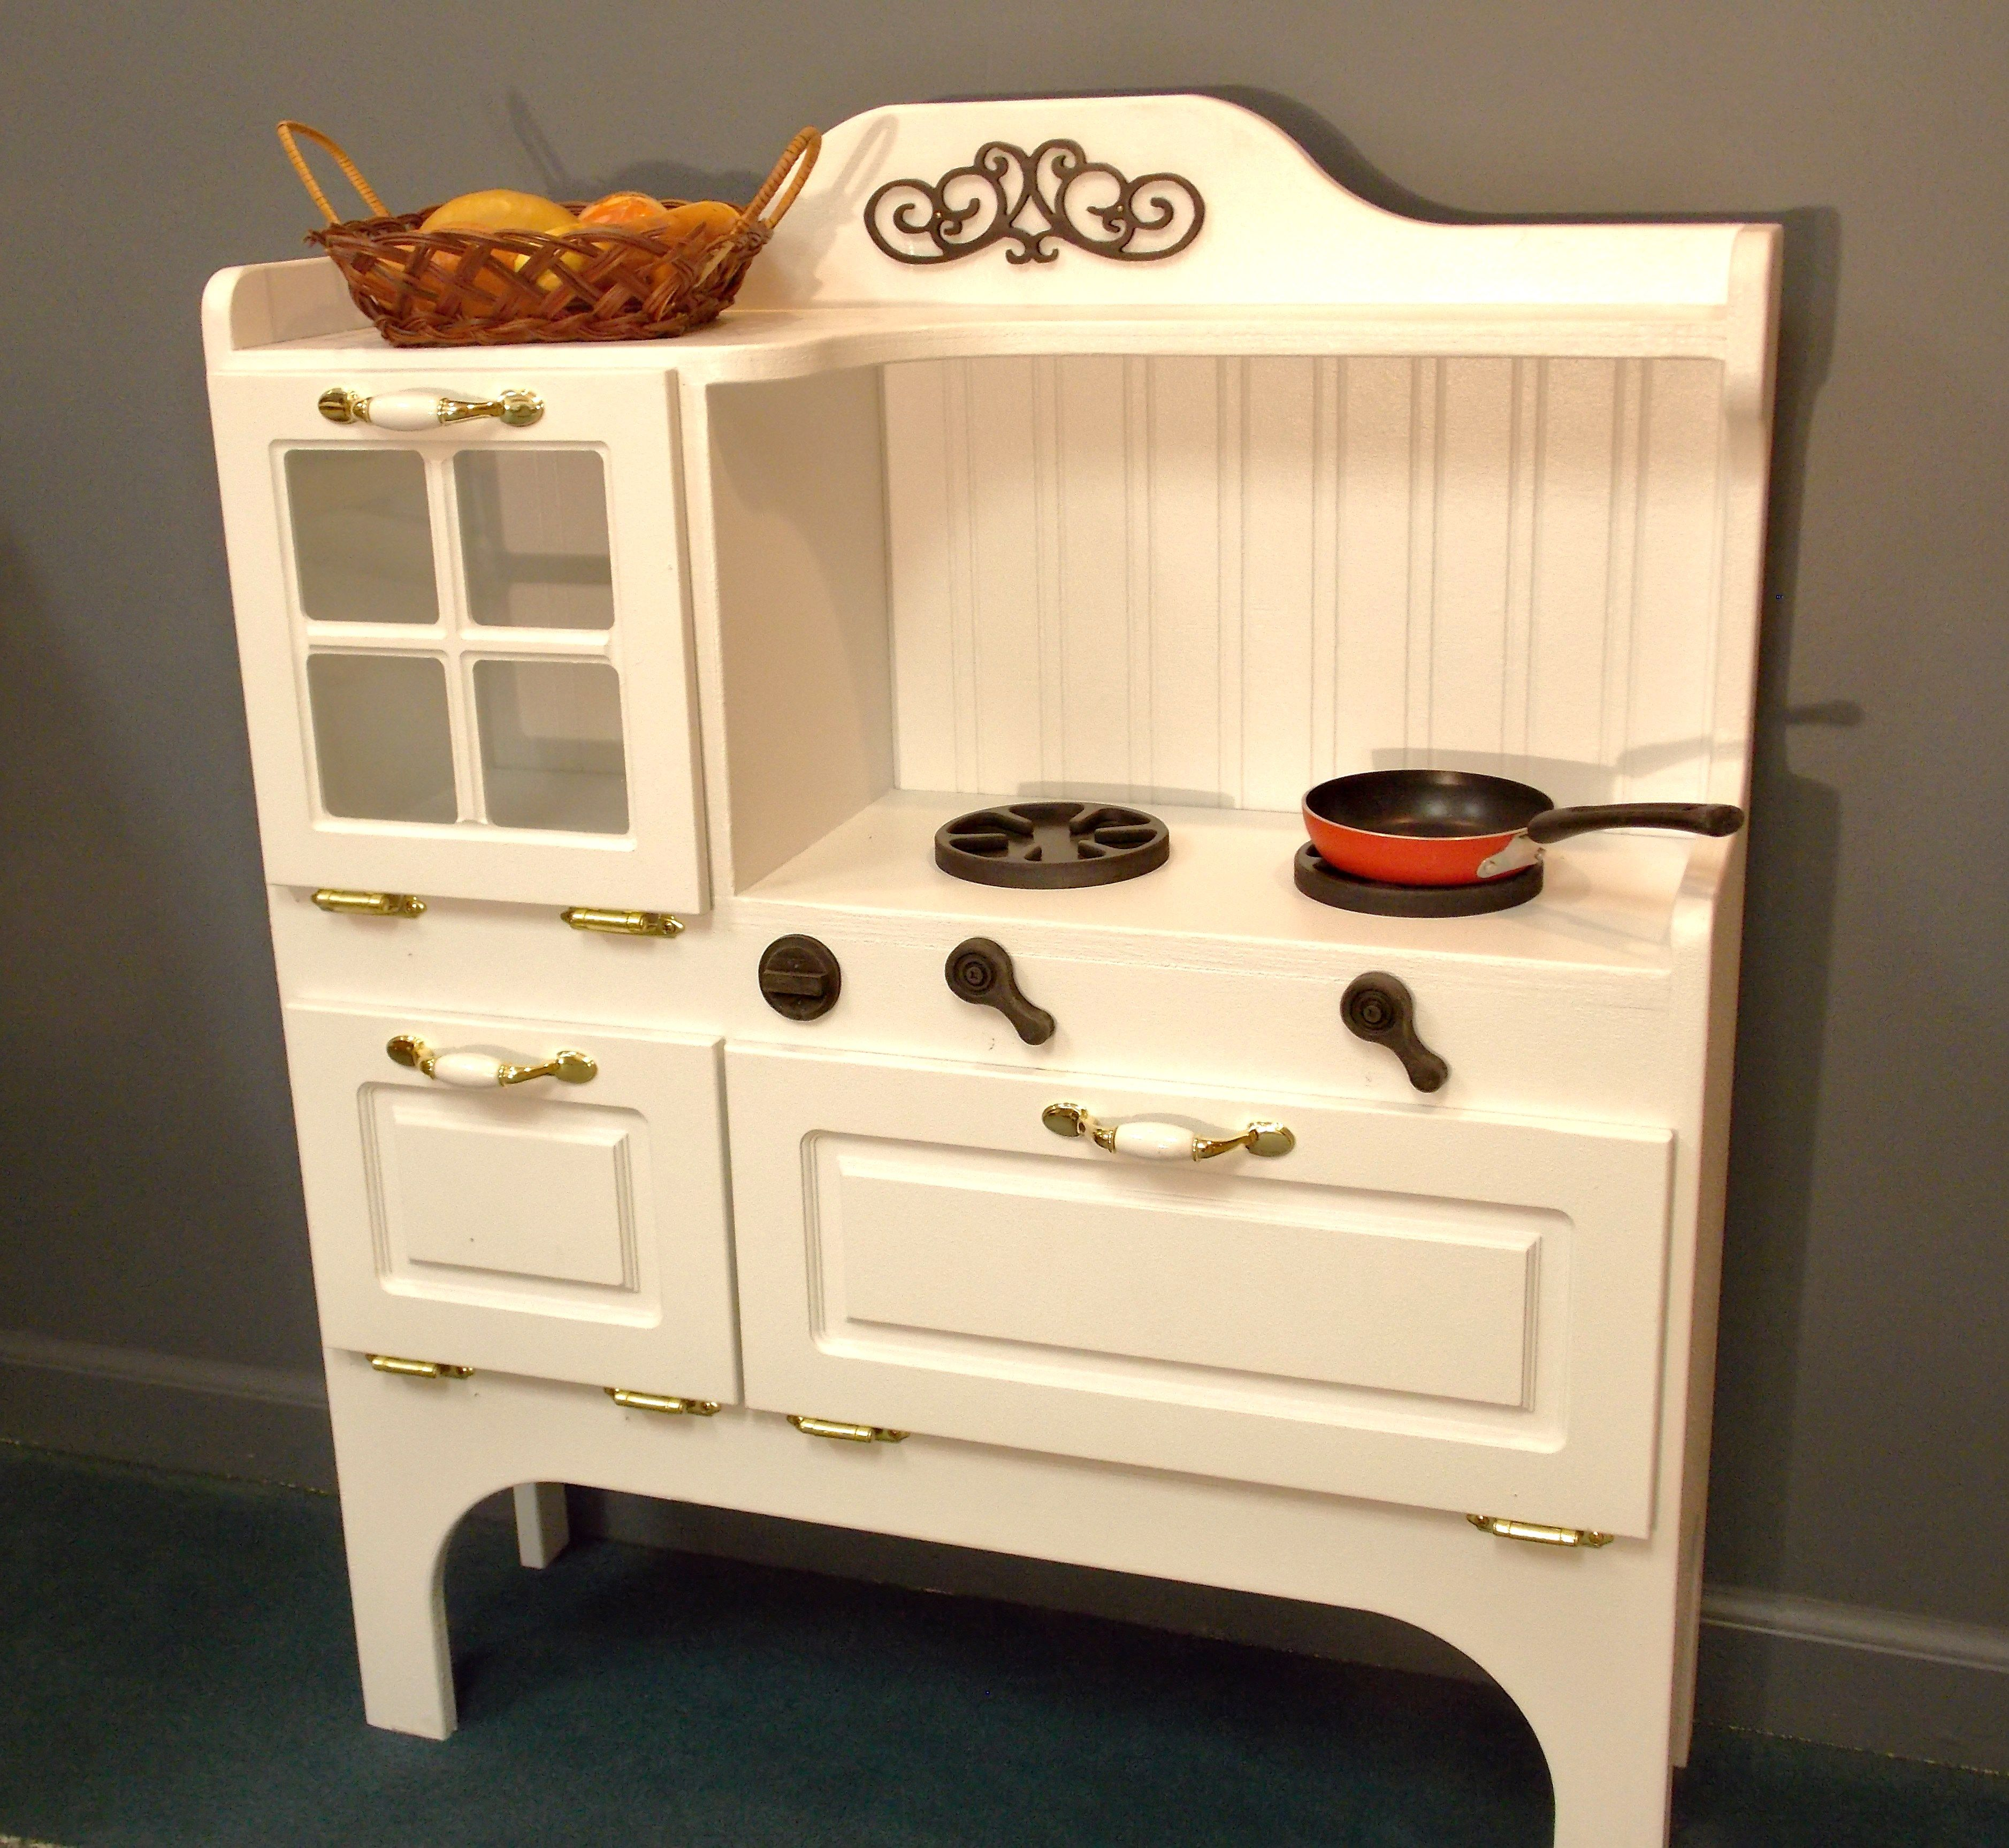 playhouse furniture ideas. Furnish Your Childs Playhouse With Adorable Furnishings! Wheather It Be For A Boys Or Girls We Have The Perfect Furniture Here! Ideas T